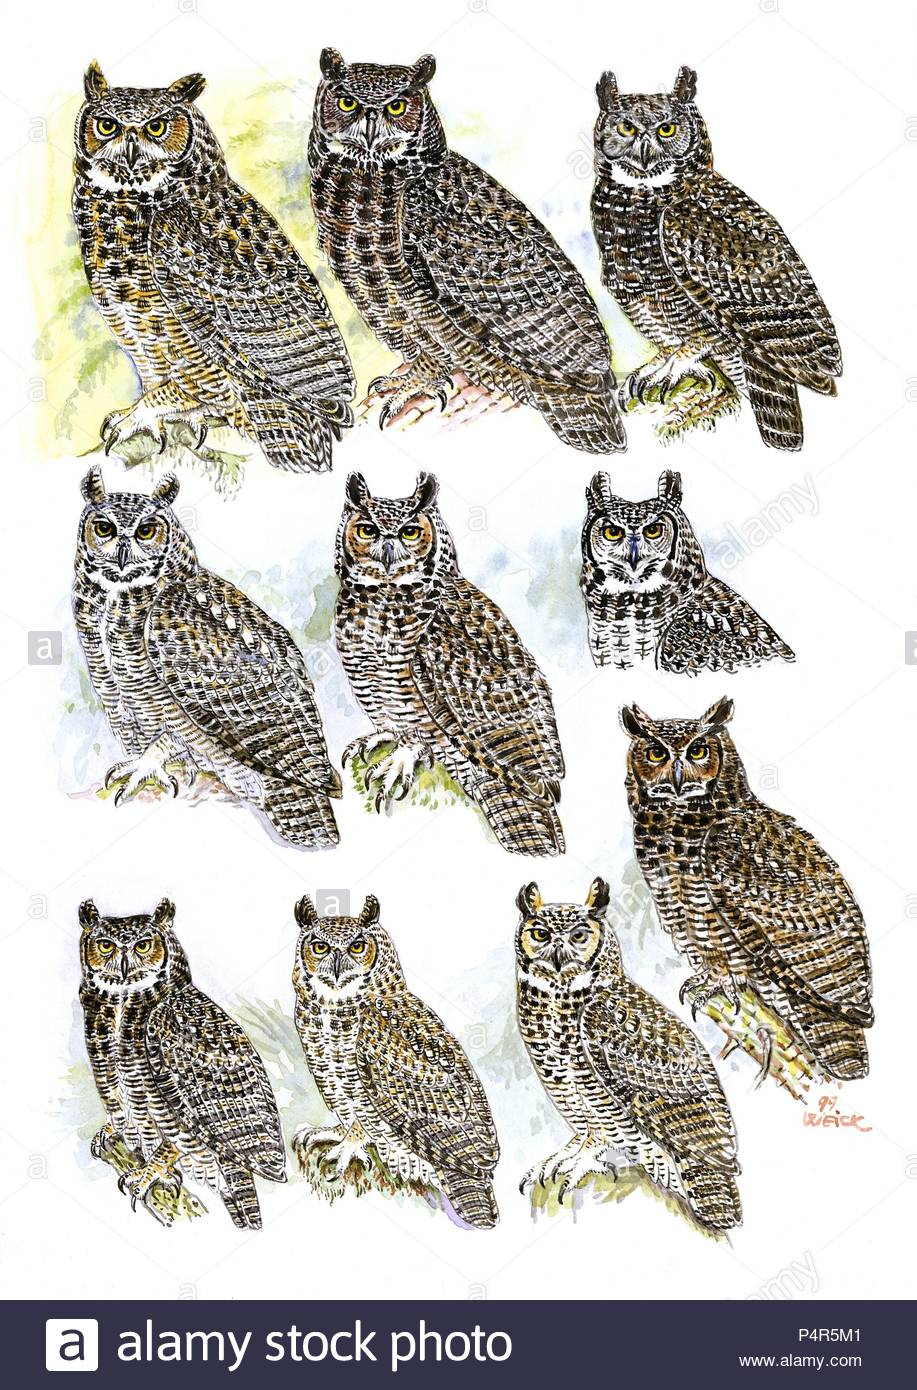 Owls Illustrations Stock Photos & Owls Illustrations Stock Images ...